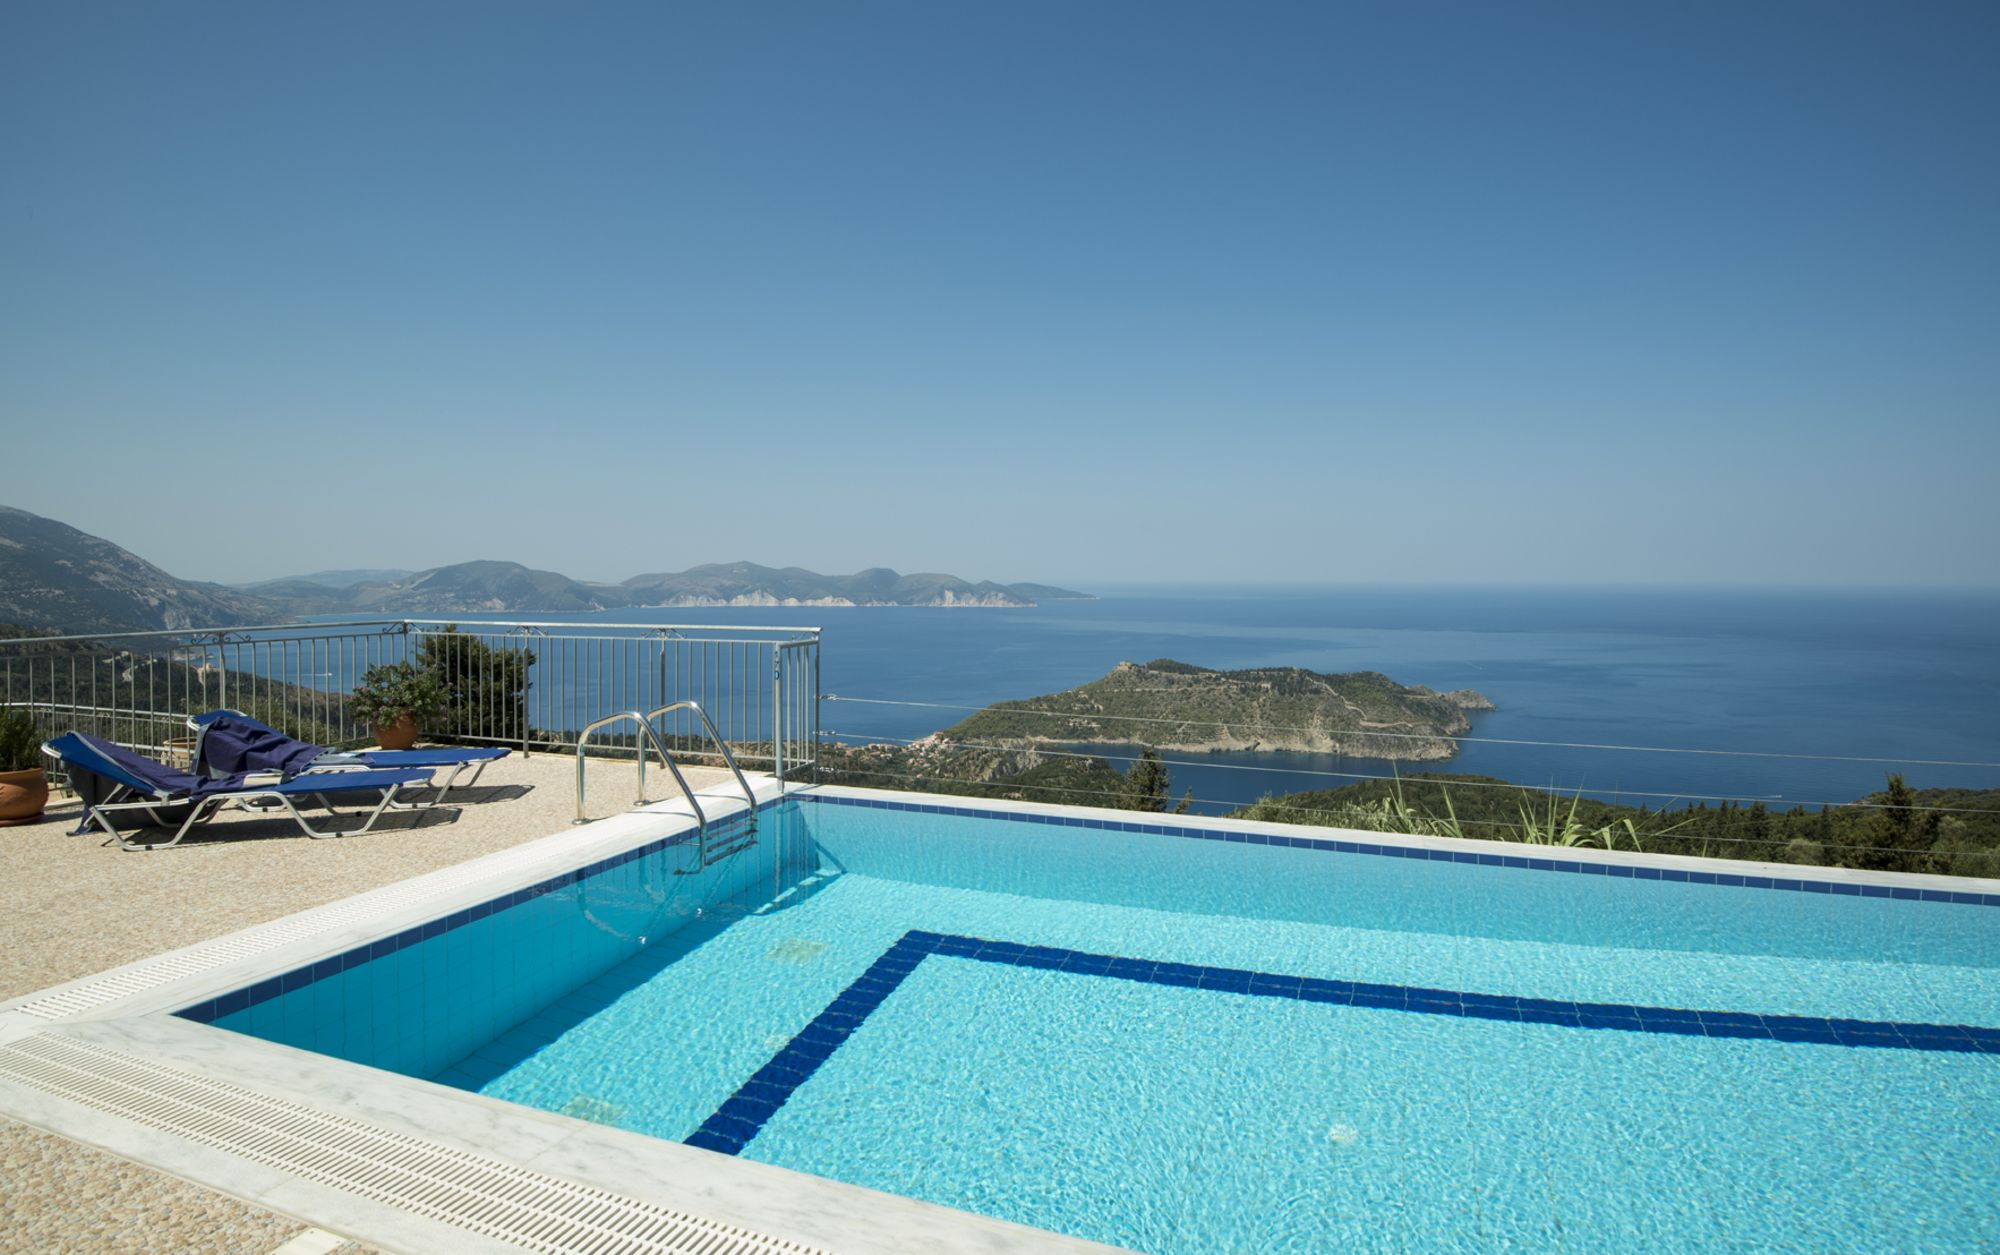 Villa Kamini Properties In Kefalonia Gic The Villa